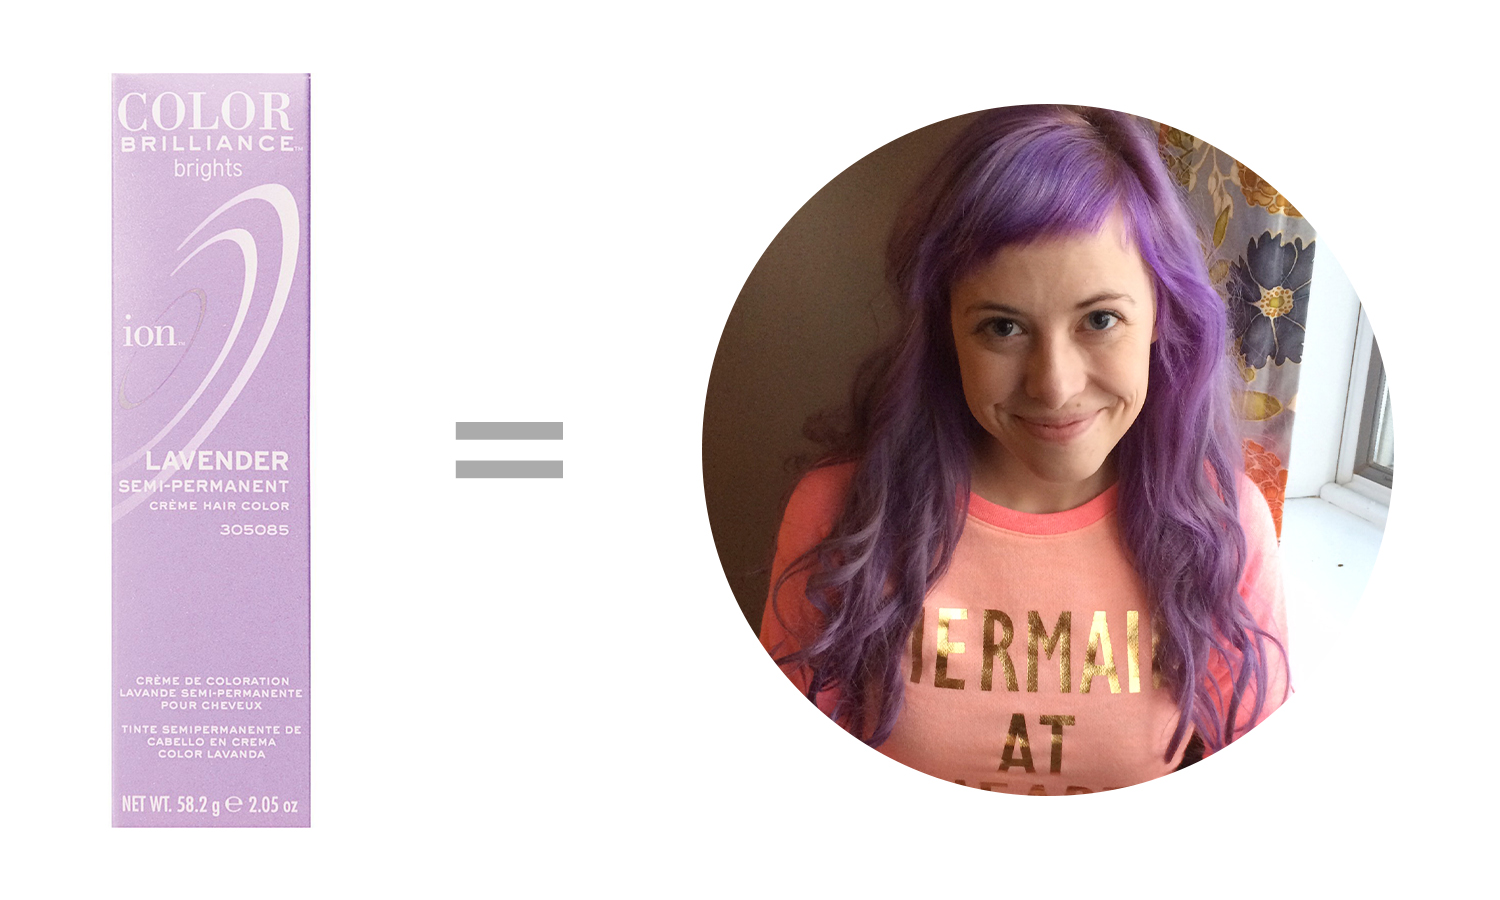 of hair + color [the coloring process].